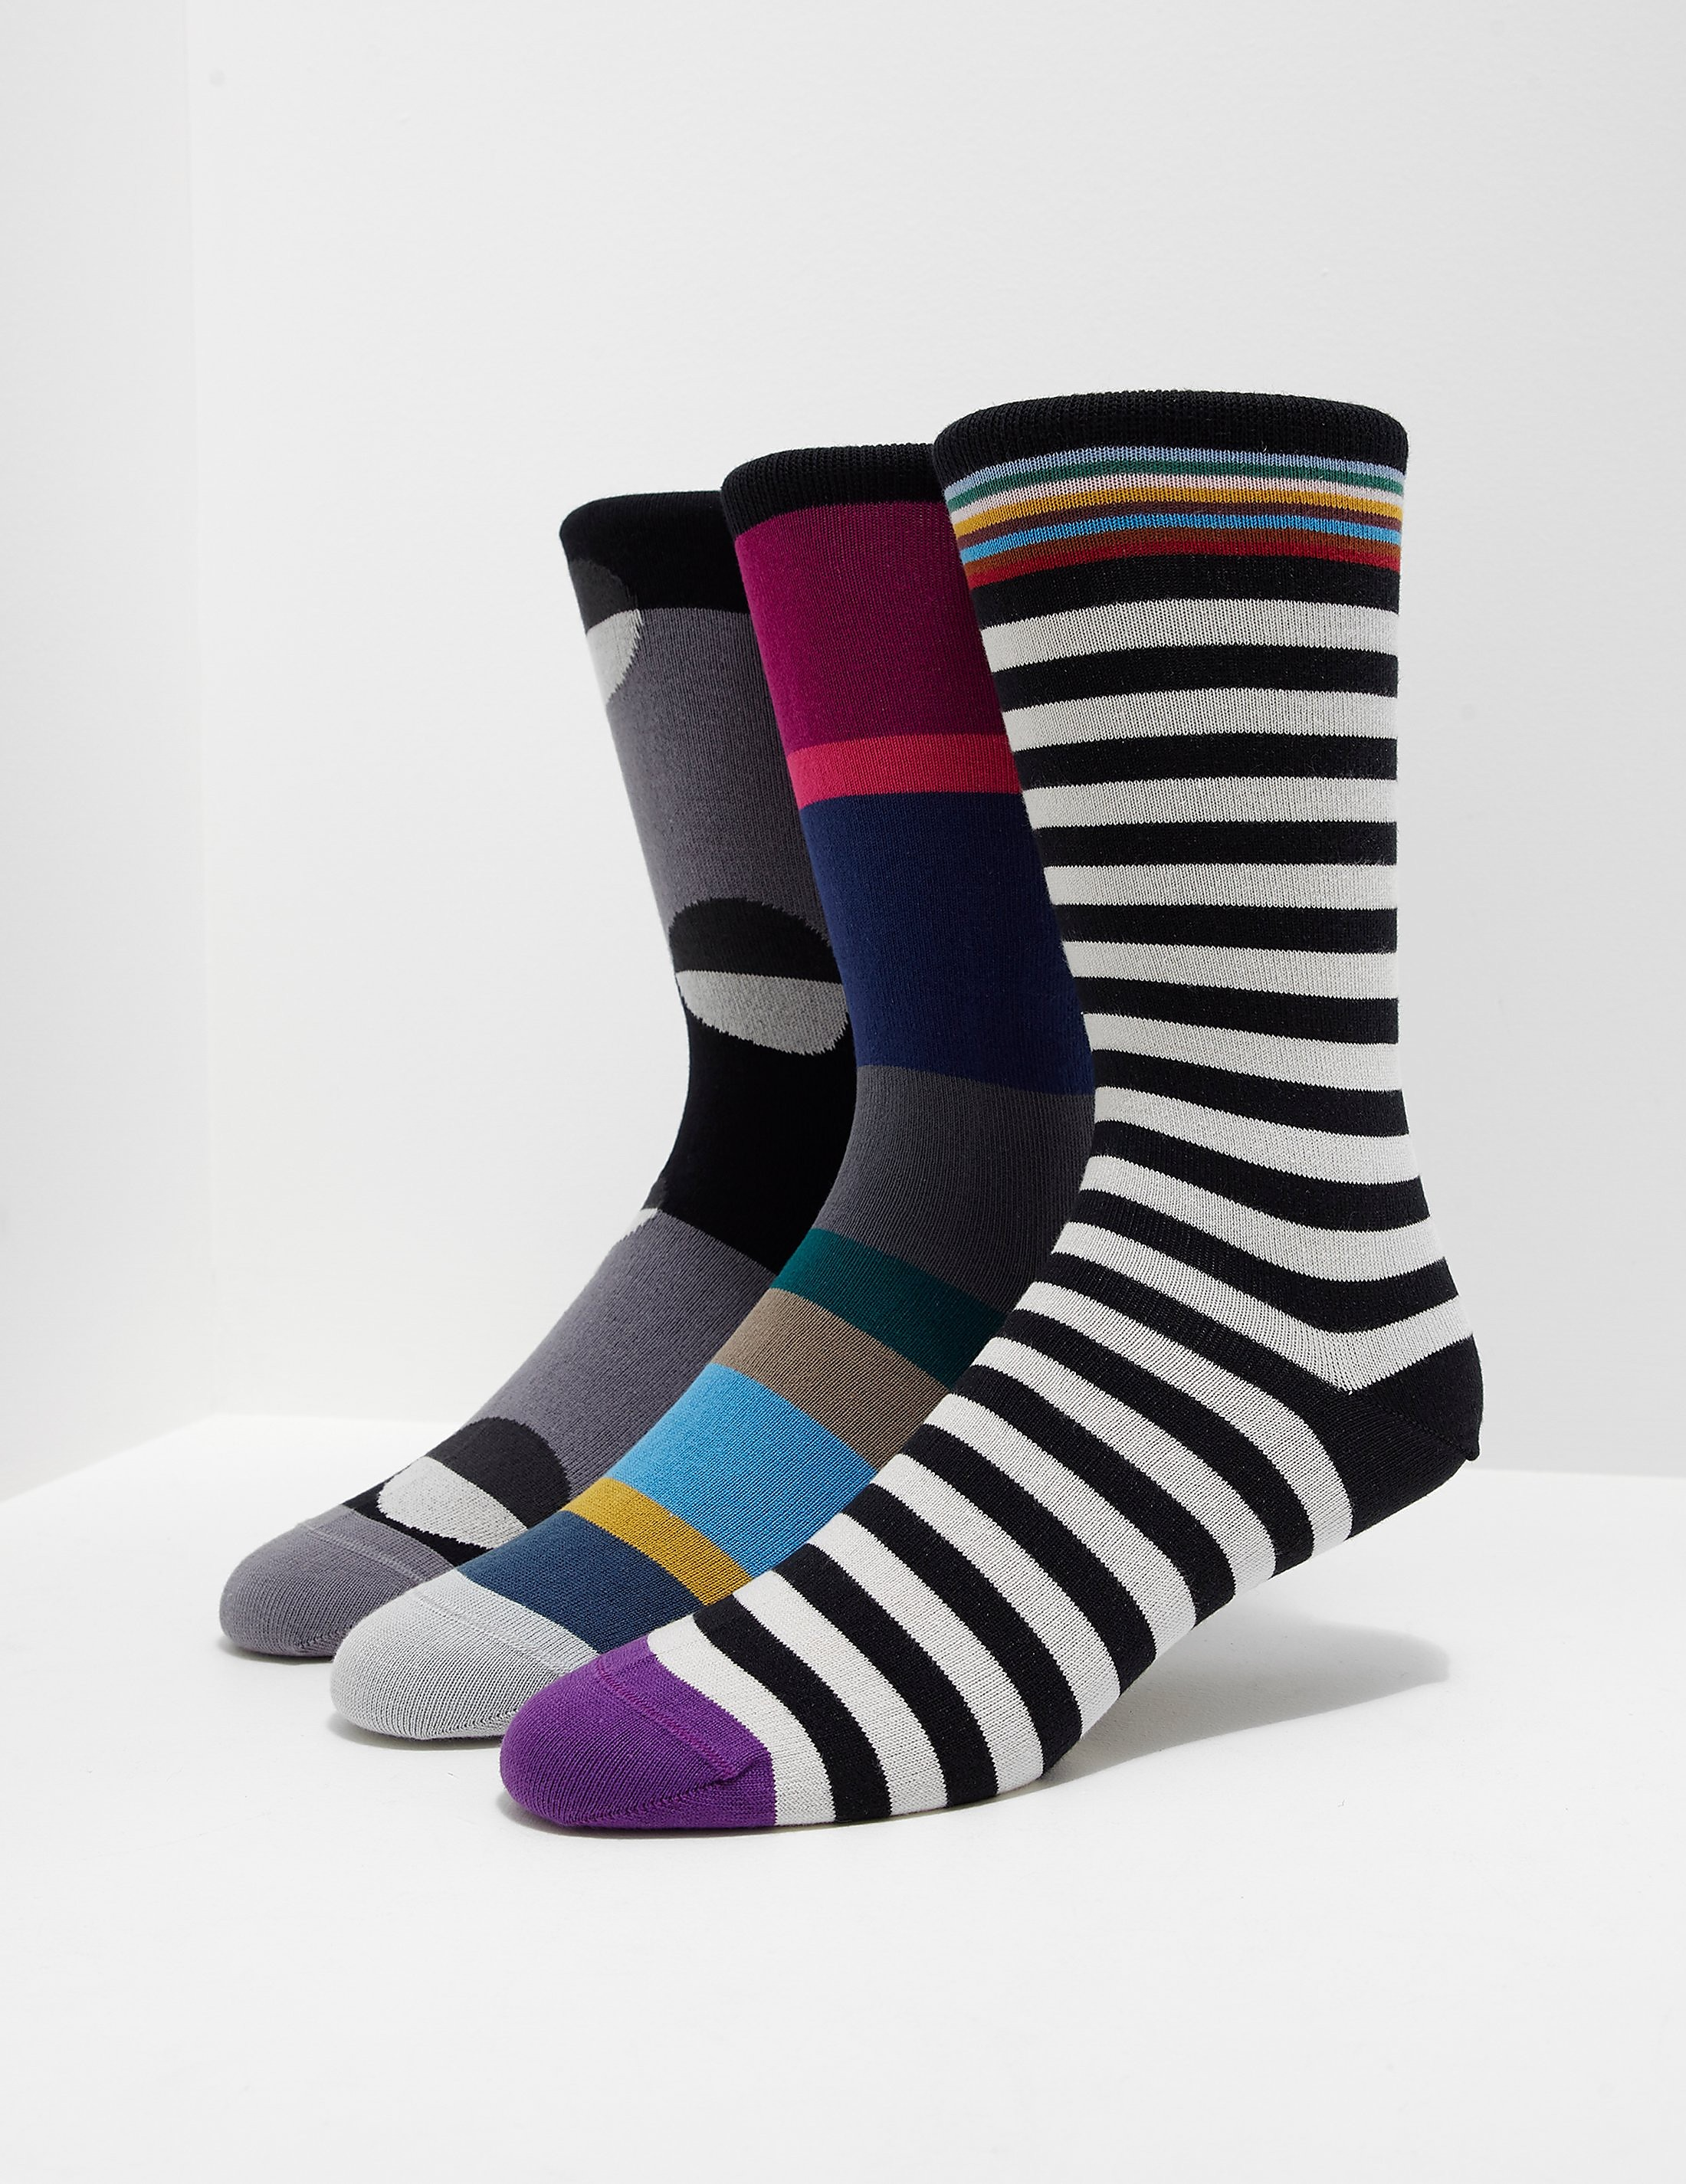 Paul Smith 3-Pack Socks